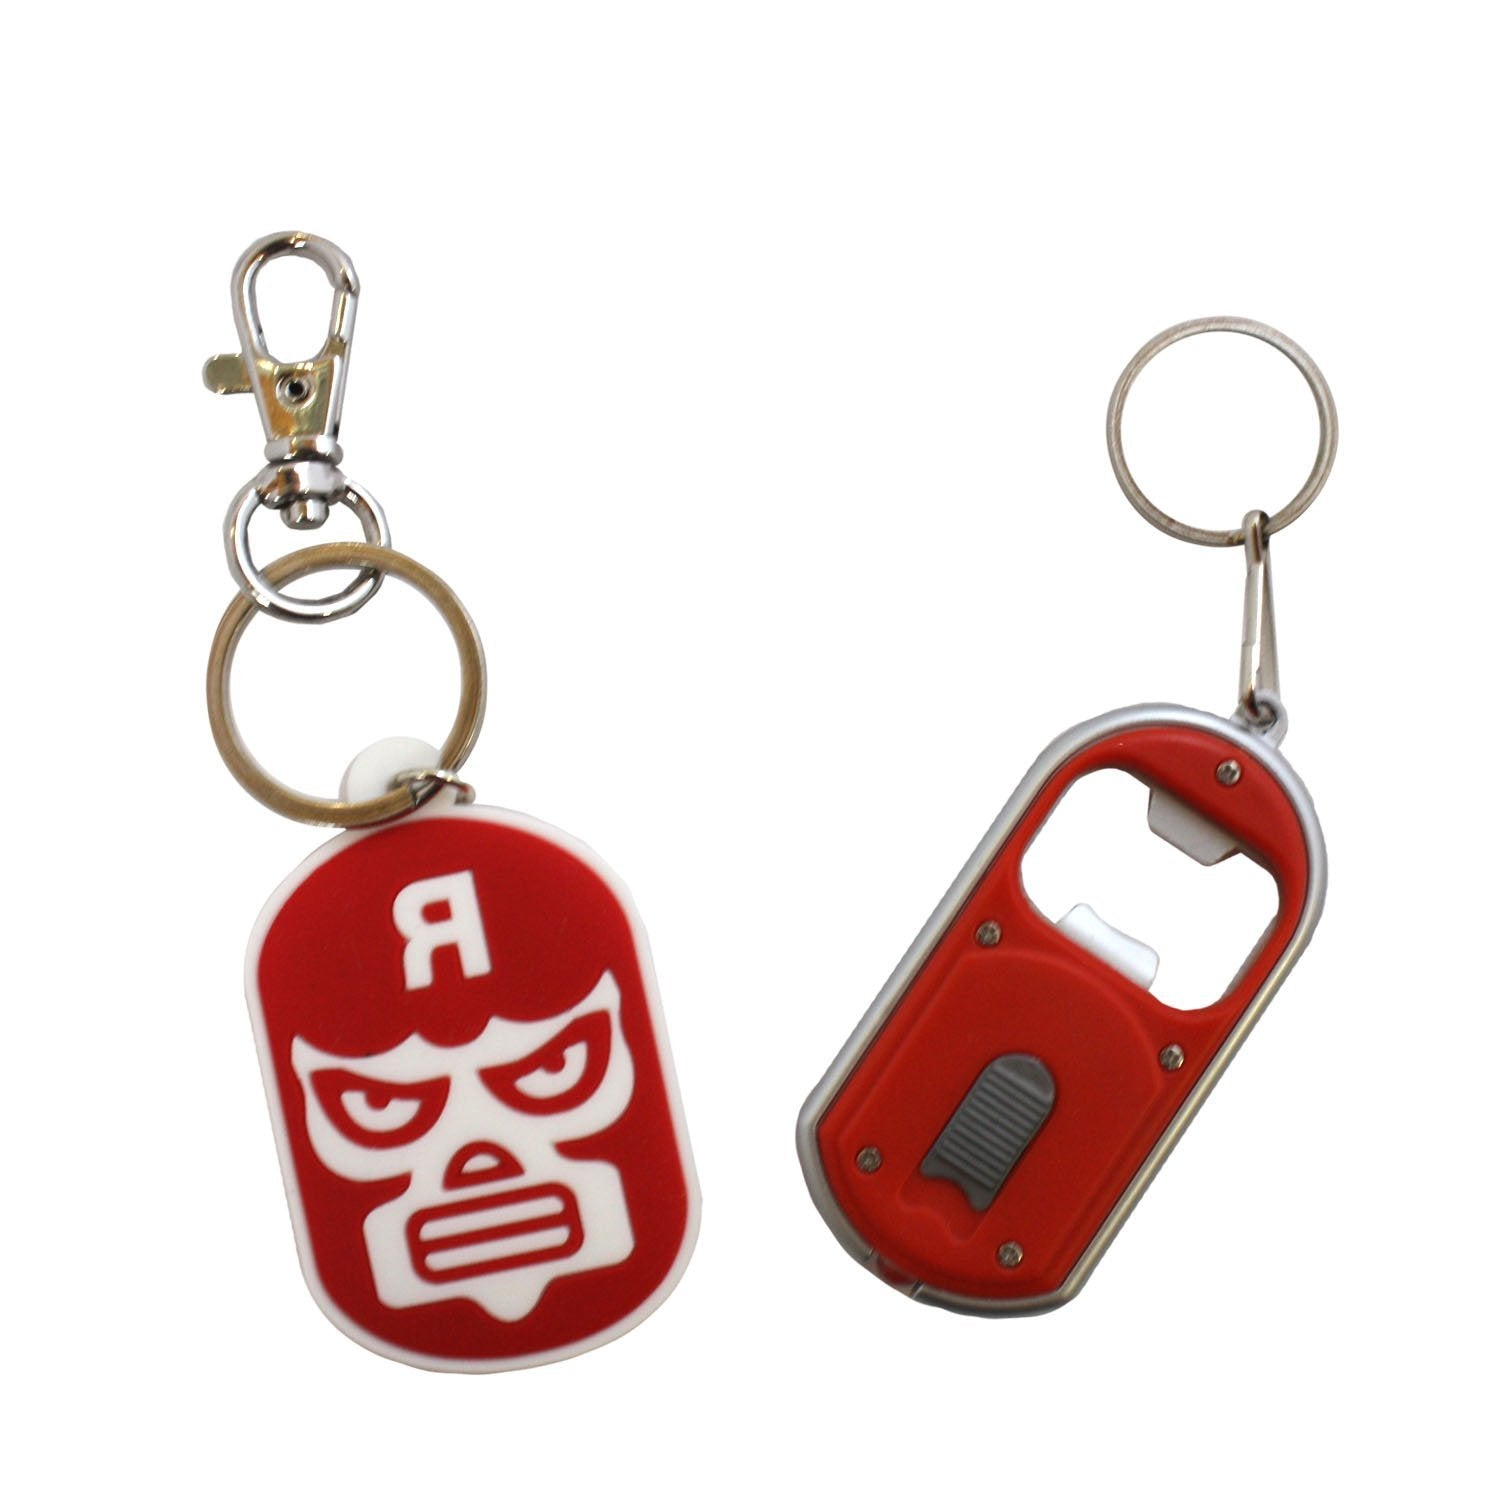 Luchador Keychain + Red Bottle Opener Keychain - Set of 2